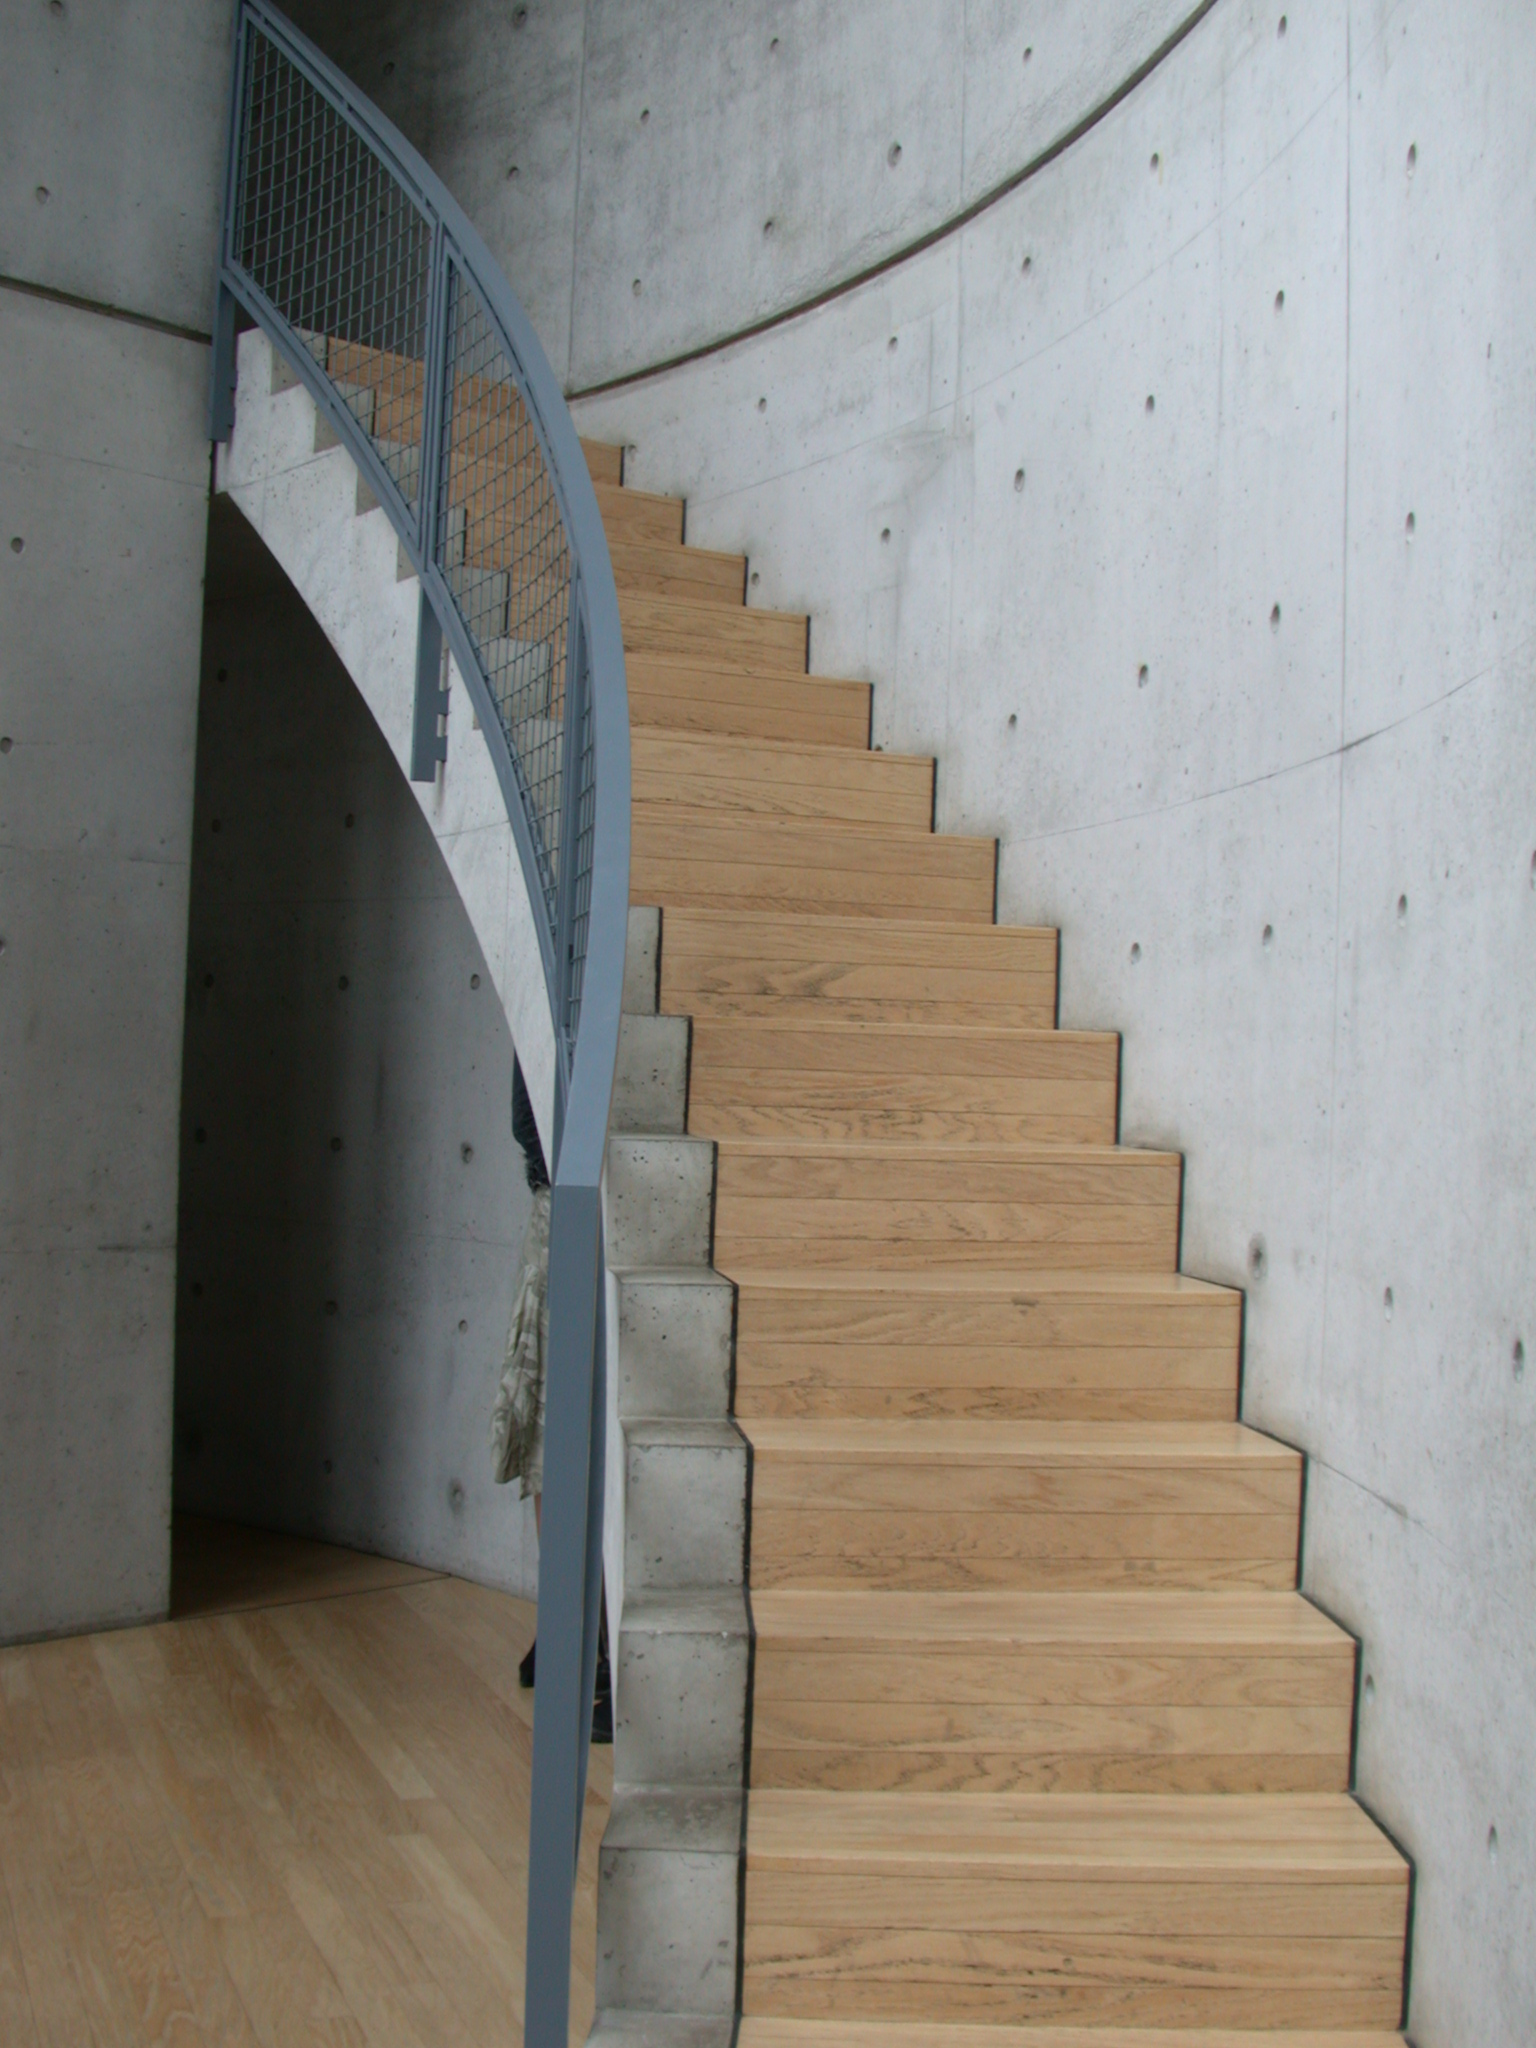 stairs stairway wood concrete brown gray